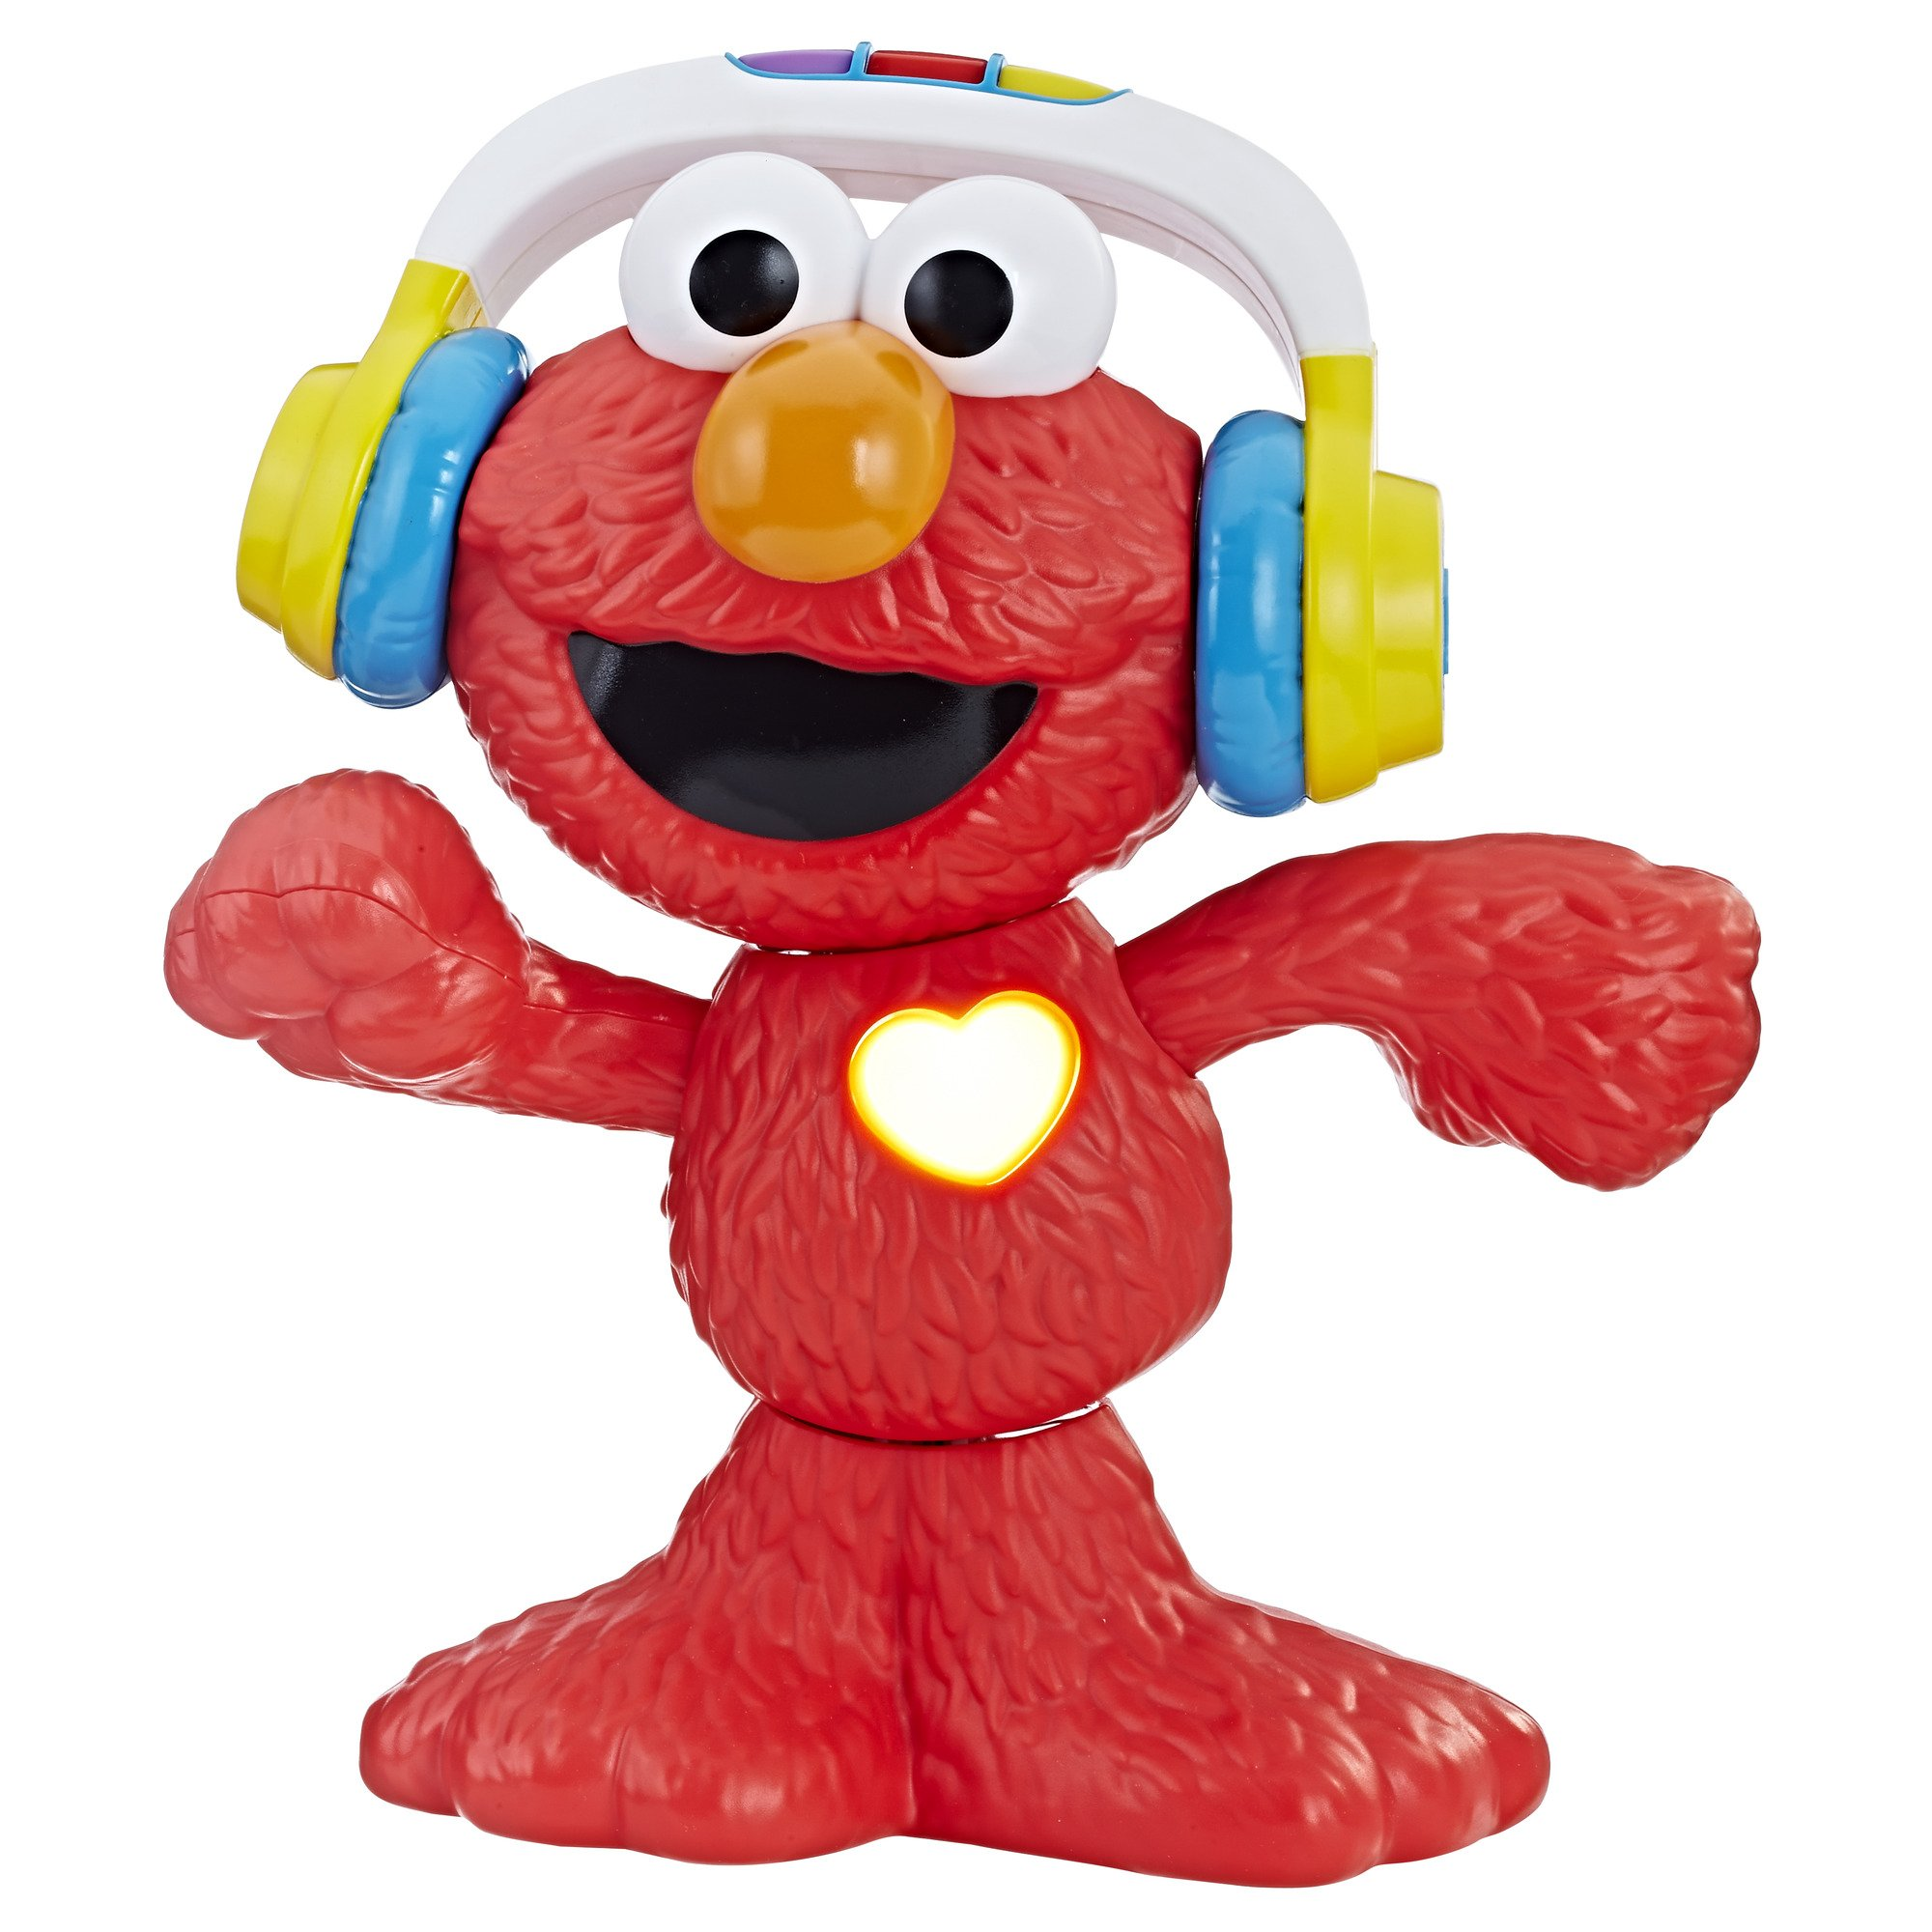 Sesame Street Let's Dance Elmo: 12-inch Elmo Toy that Sings and Dances, With 3 Musical Modes, Sesame Street Toy for Kids Ages 18 Months and Up by Sesame Street